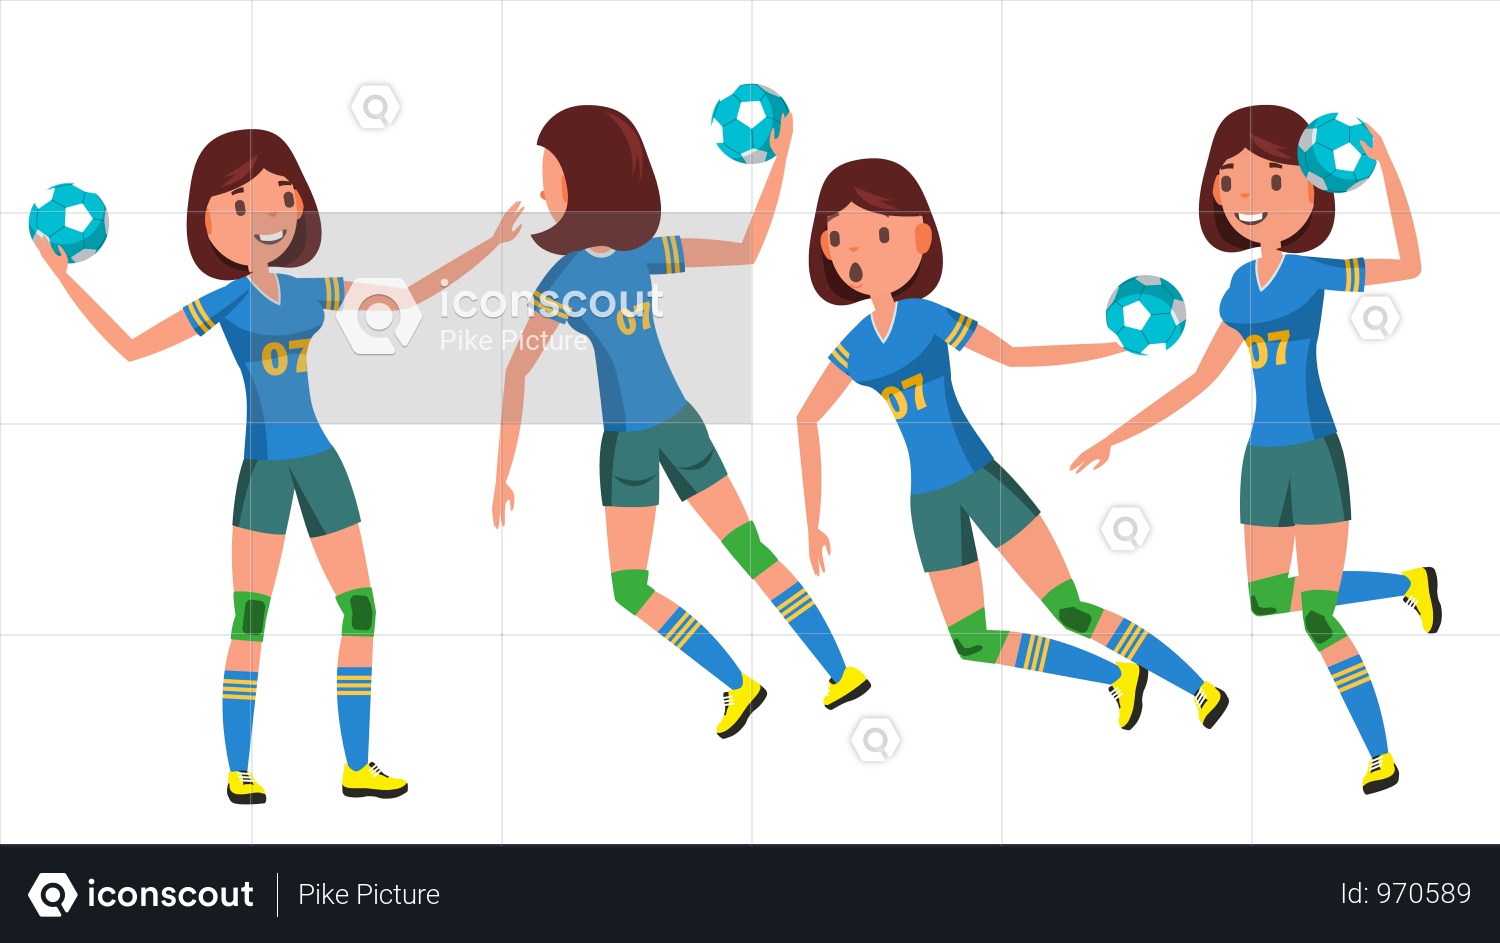 Premium Handball Female Player Vector Playing In Different Poses Woman Attack Jump Shooting Player Athlete Isolated On White Cartoon Character Illustration Handball Character Illustration Field Hockey Girls